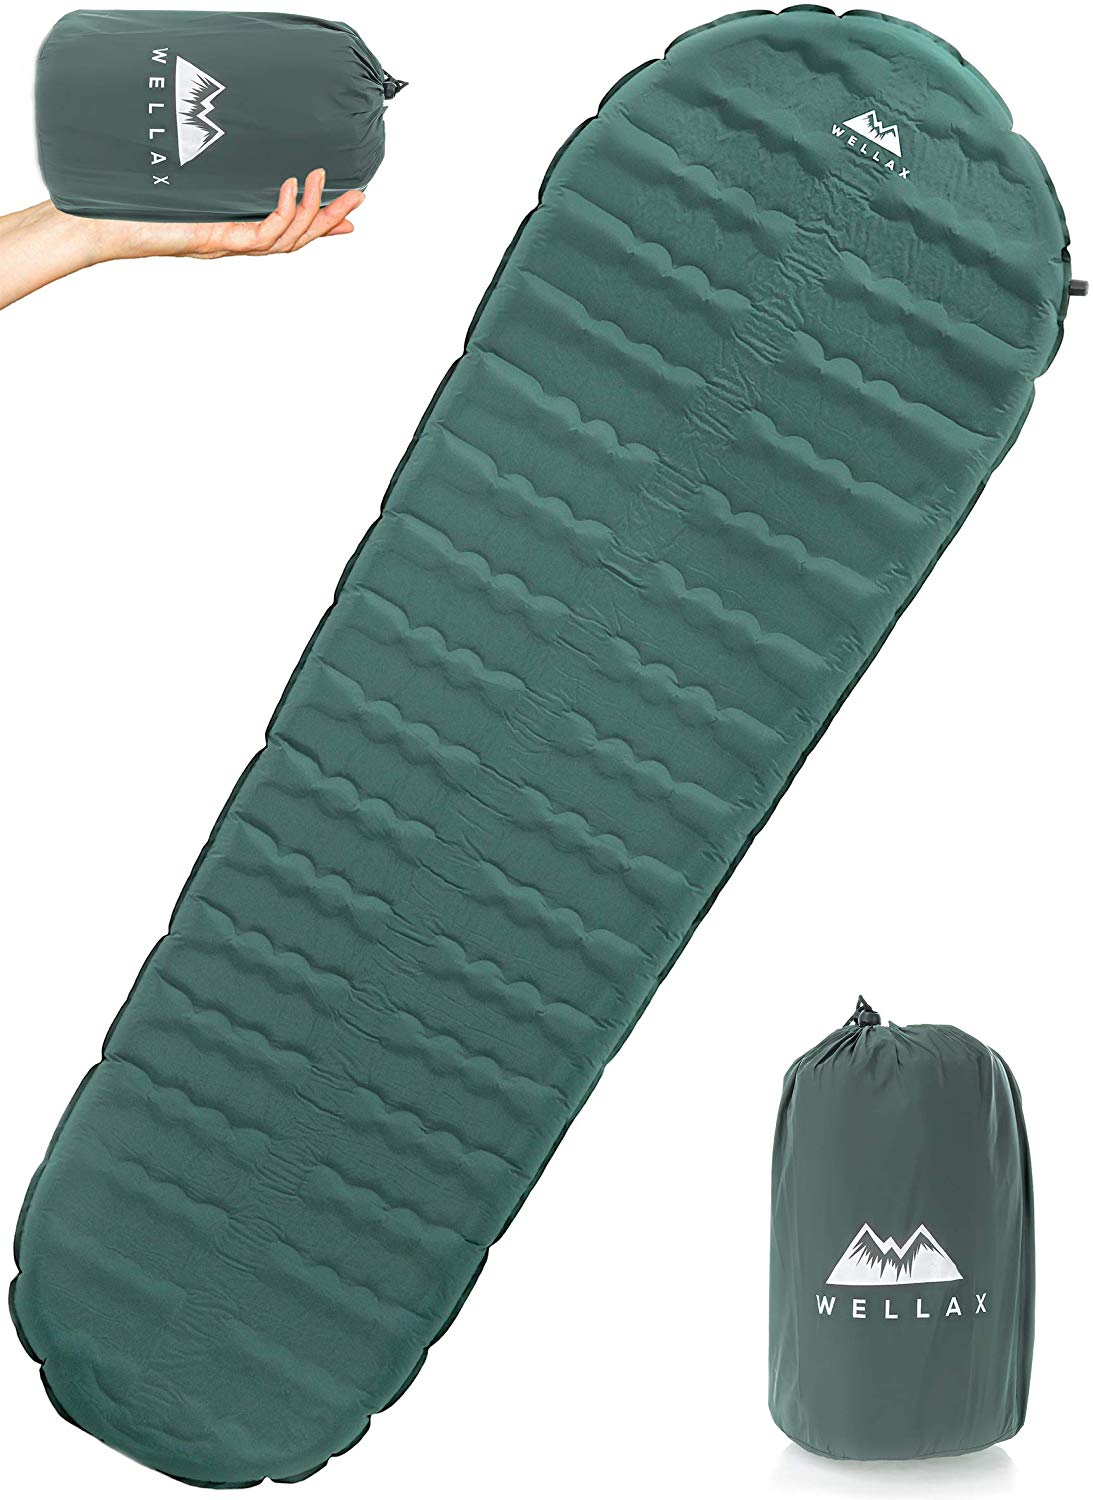 Wellax Ultra Self Inflating Sleeping Pad